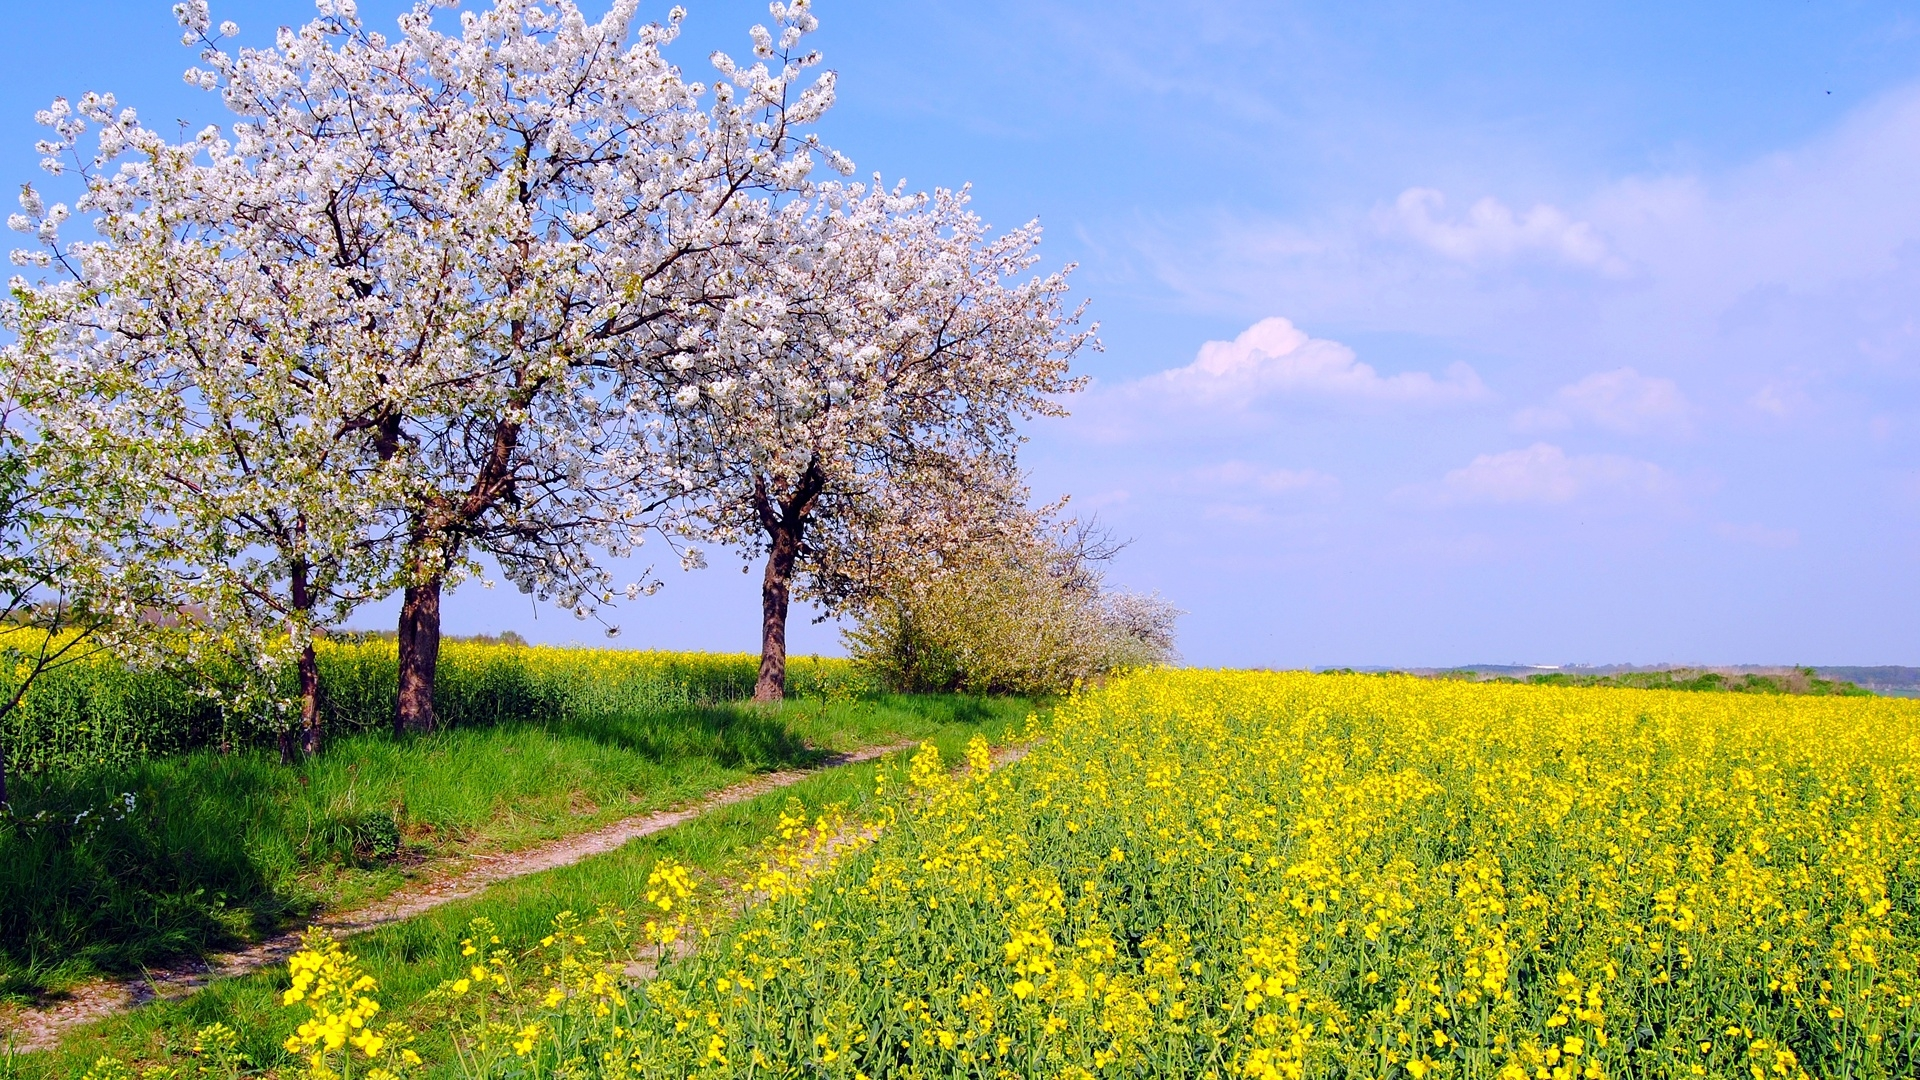 Spring spring nature scenery fields flowers blue sky 1920x1080